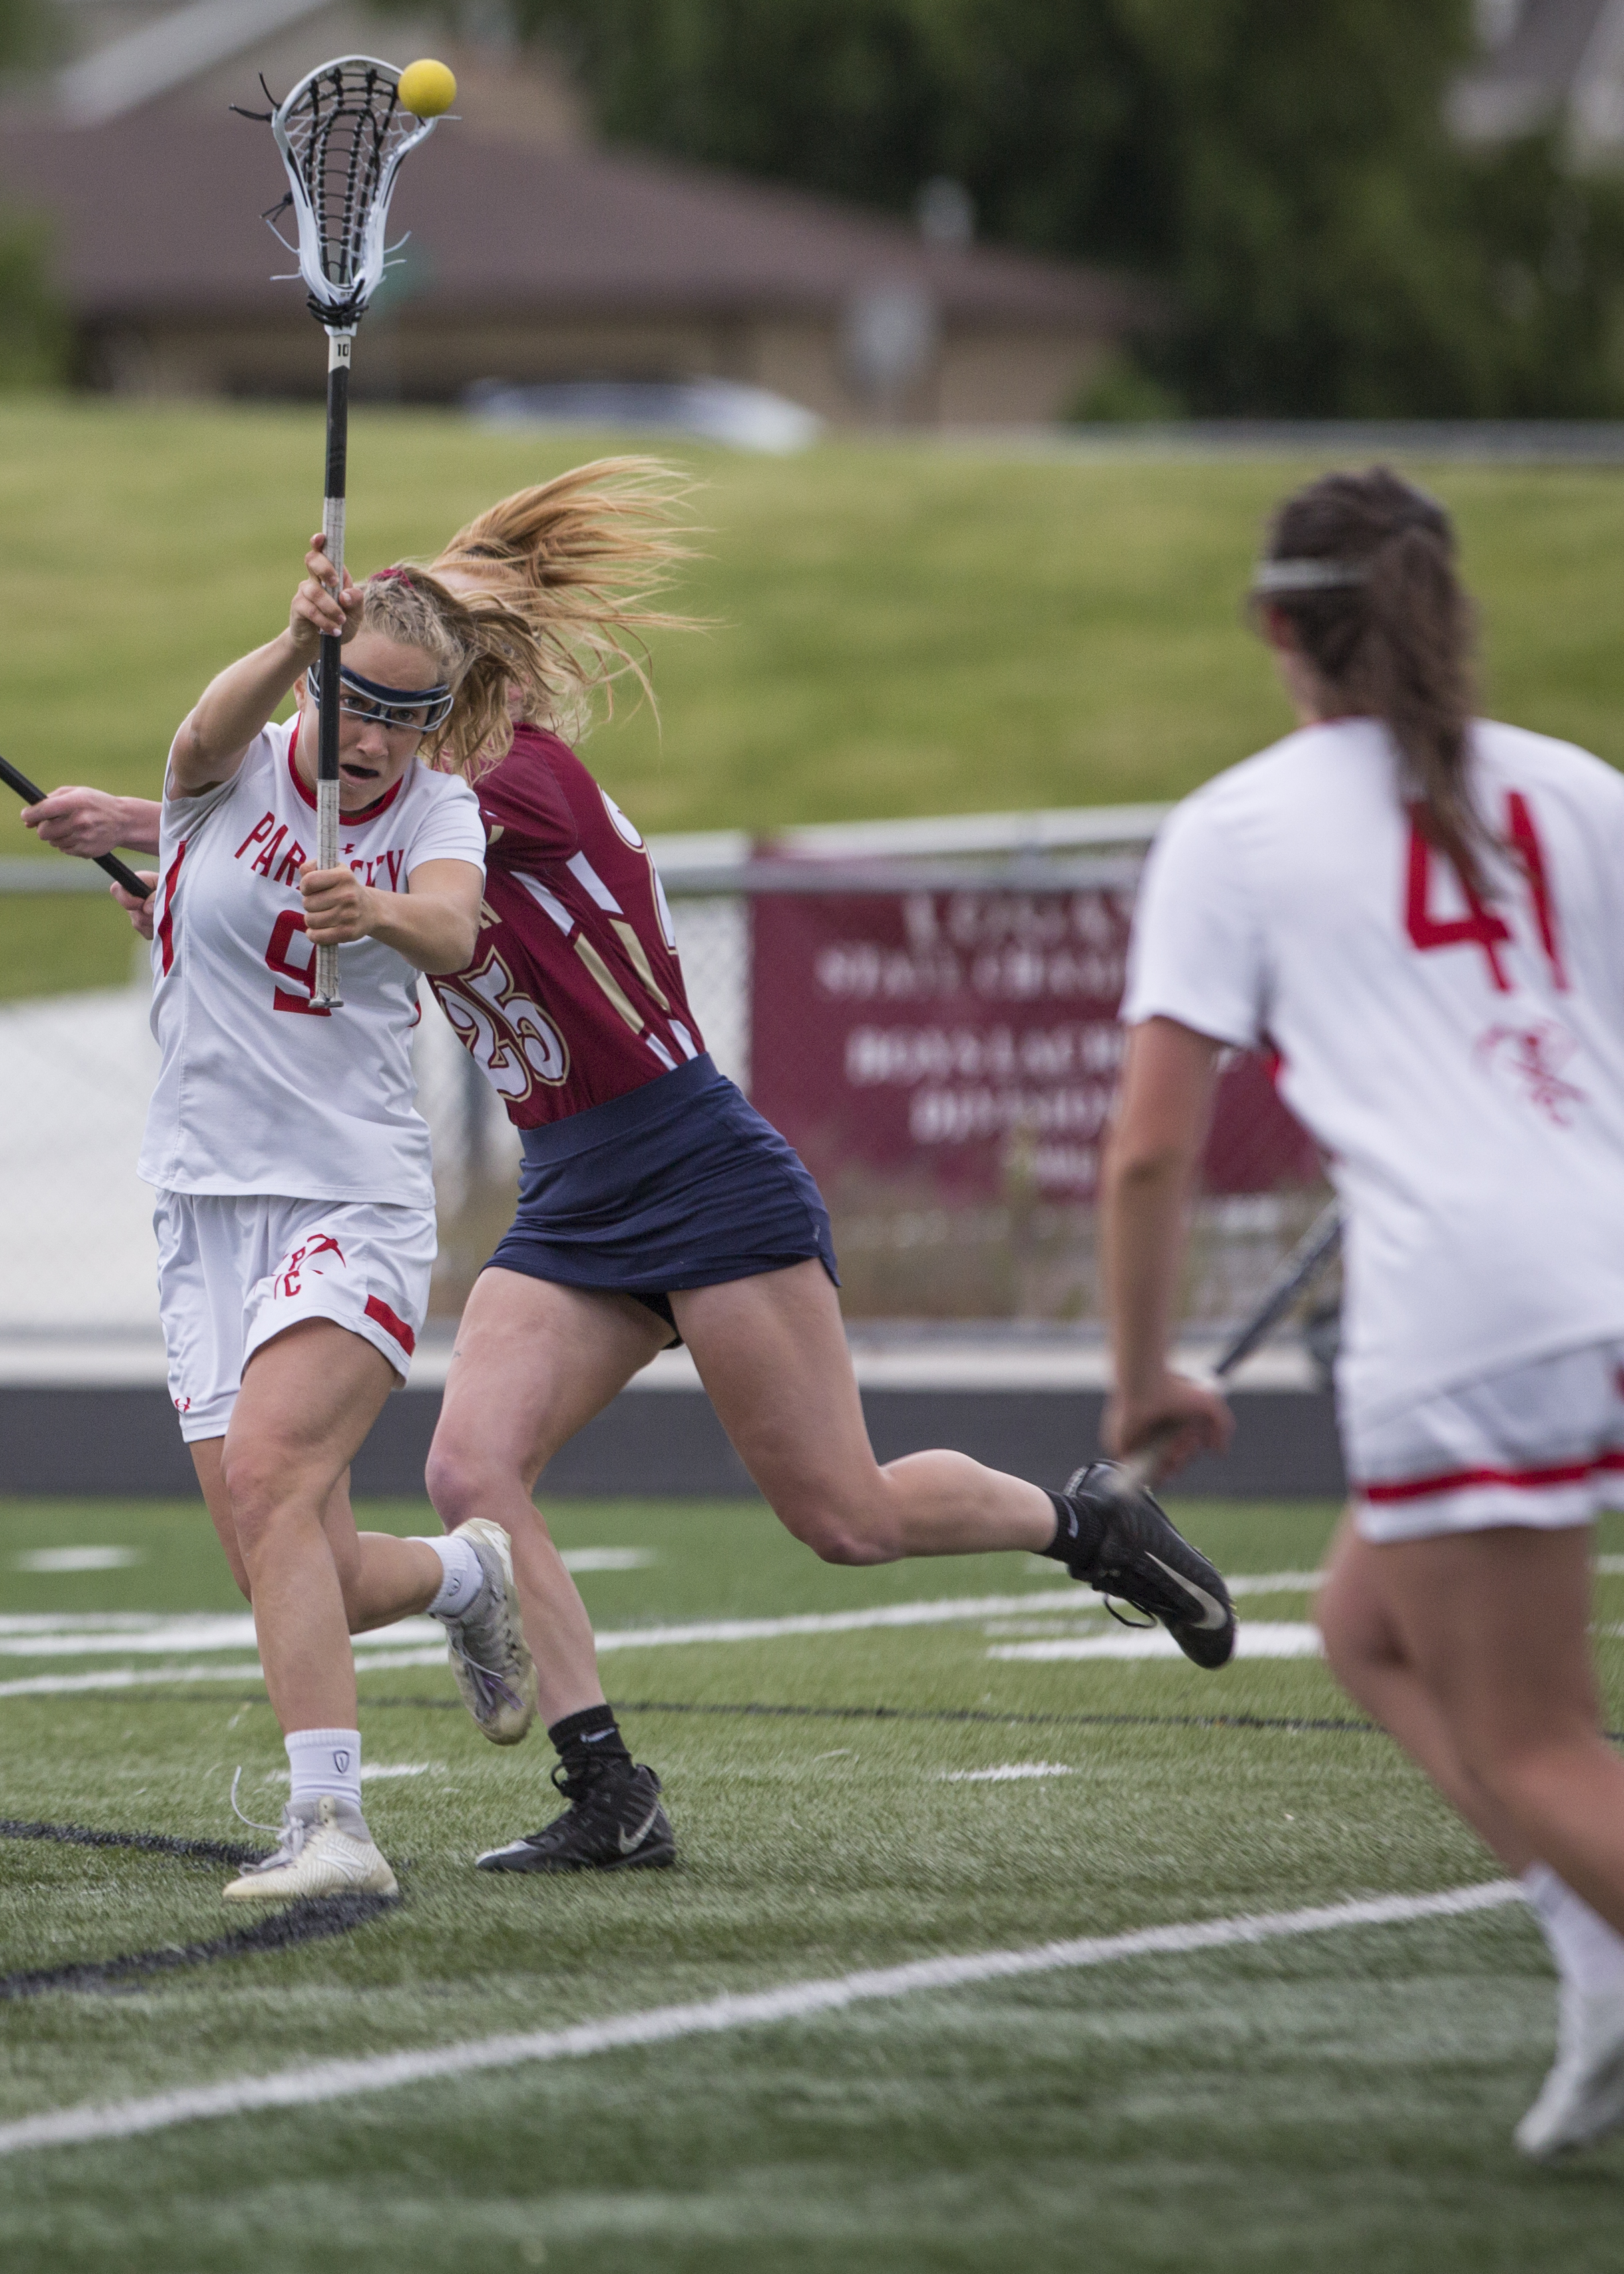 Park City girls lacrosse falls to Herriman in state title rematch